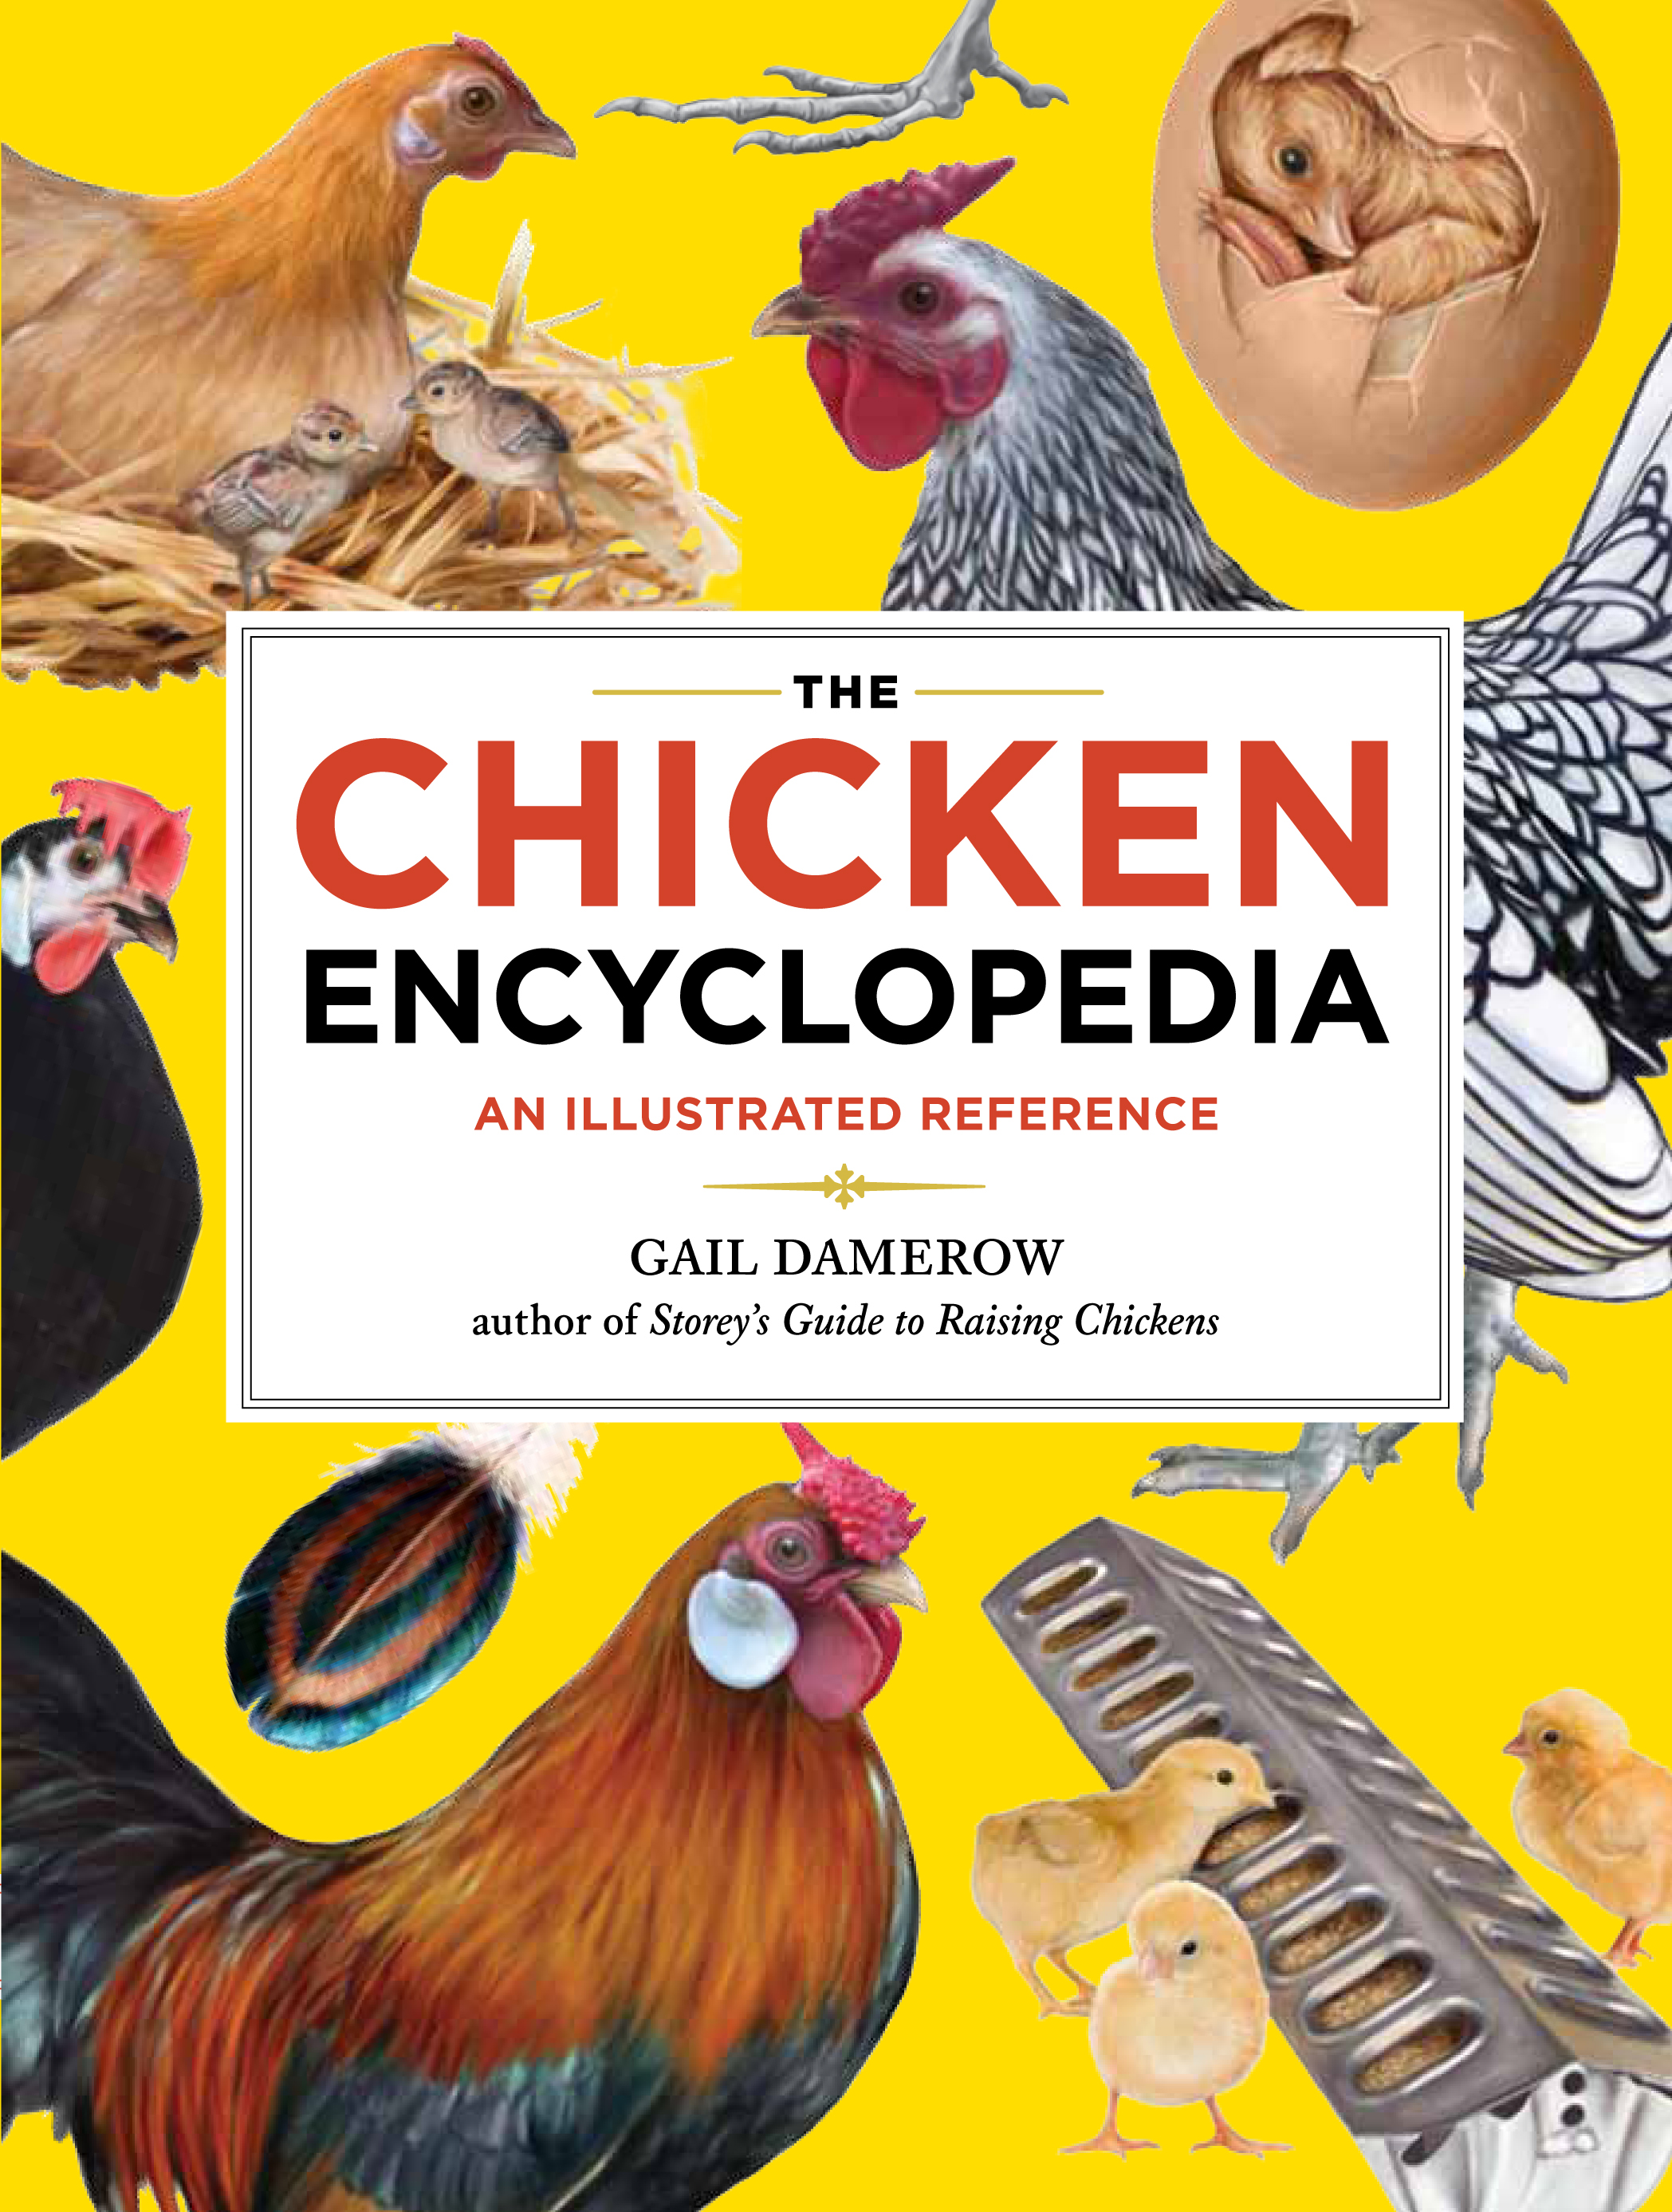 The Chicken Encyclopedia An Illustrated Reference - Gail Damerow